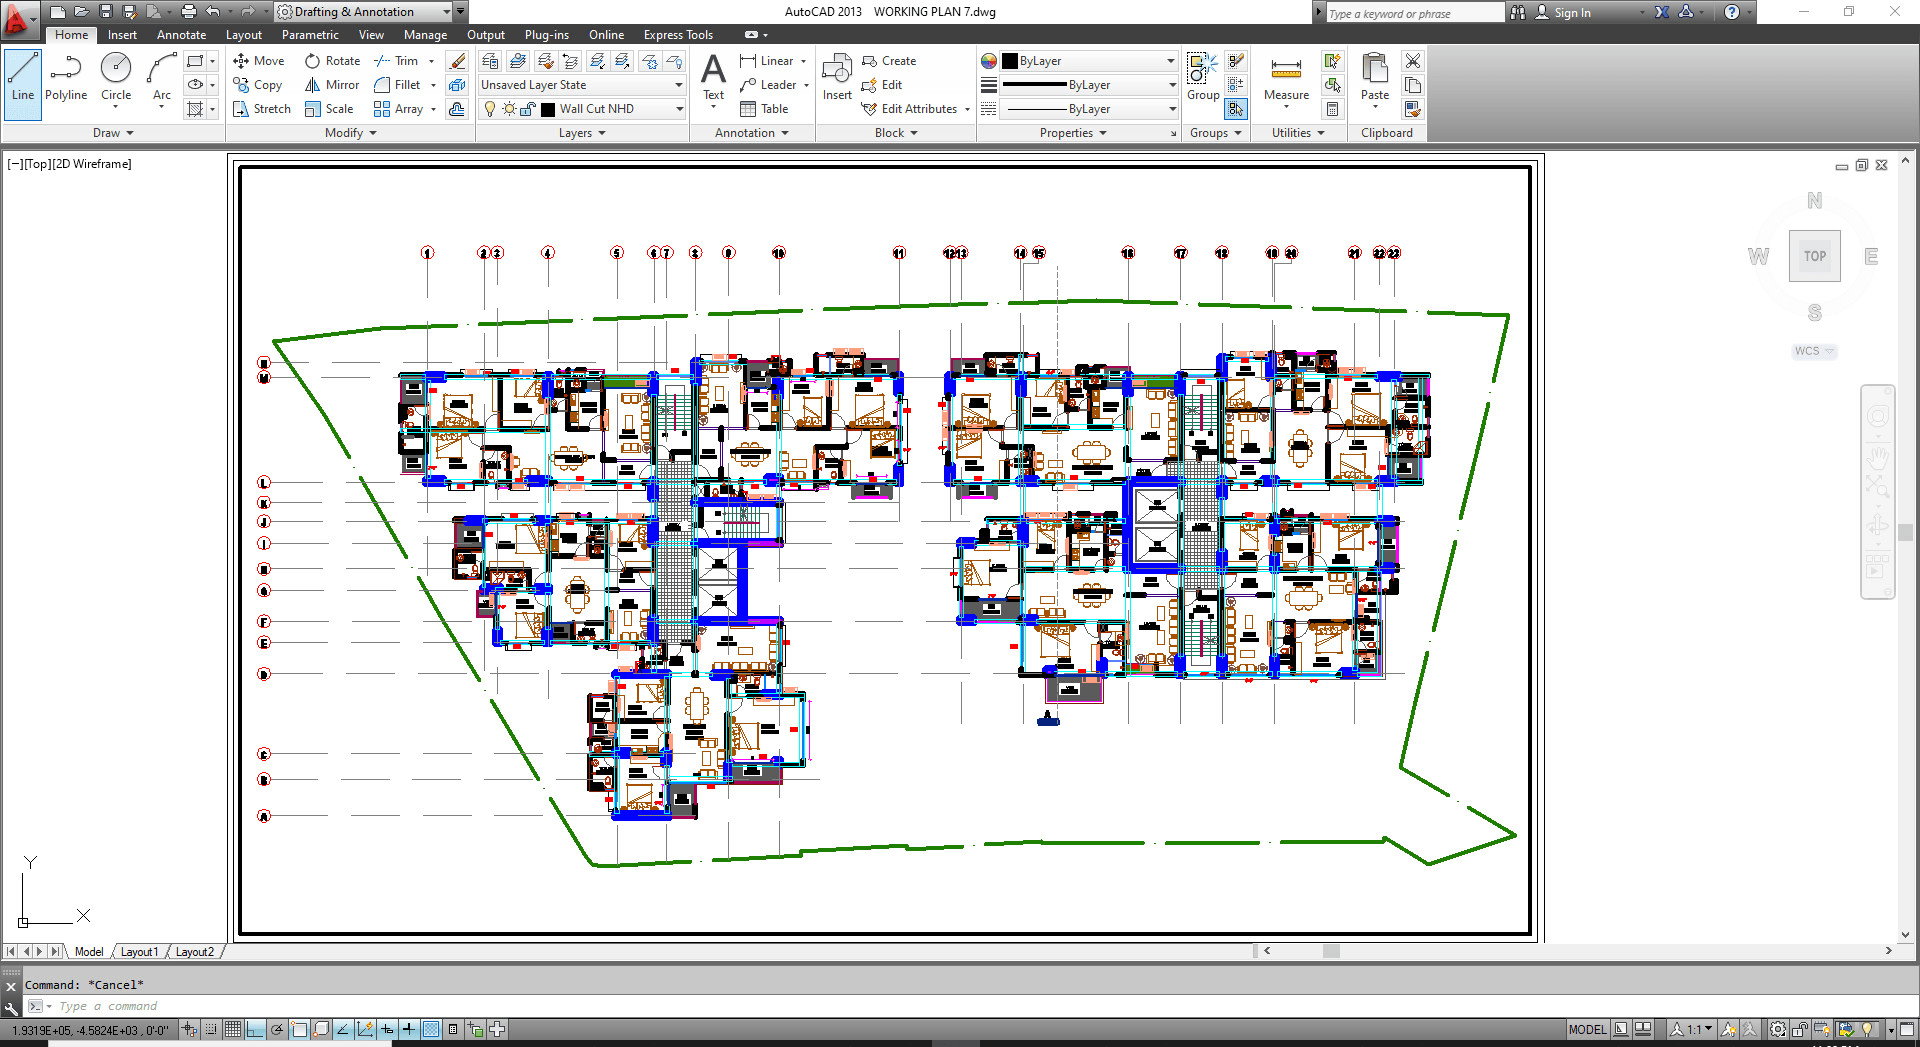 I Will Make 2d Drawings And Floor Plan By Autocad And Photoshop Ad Ad Floo In 2020 Autocad How To Plan Floor Plans